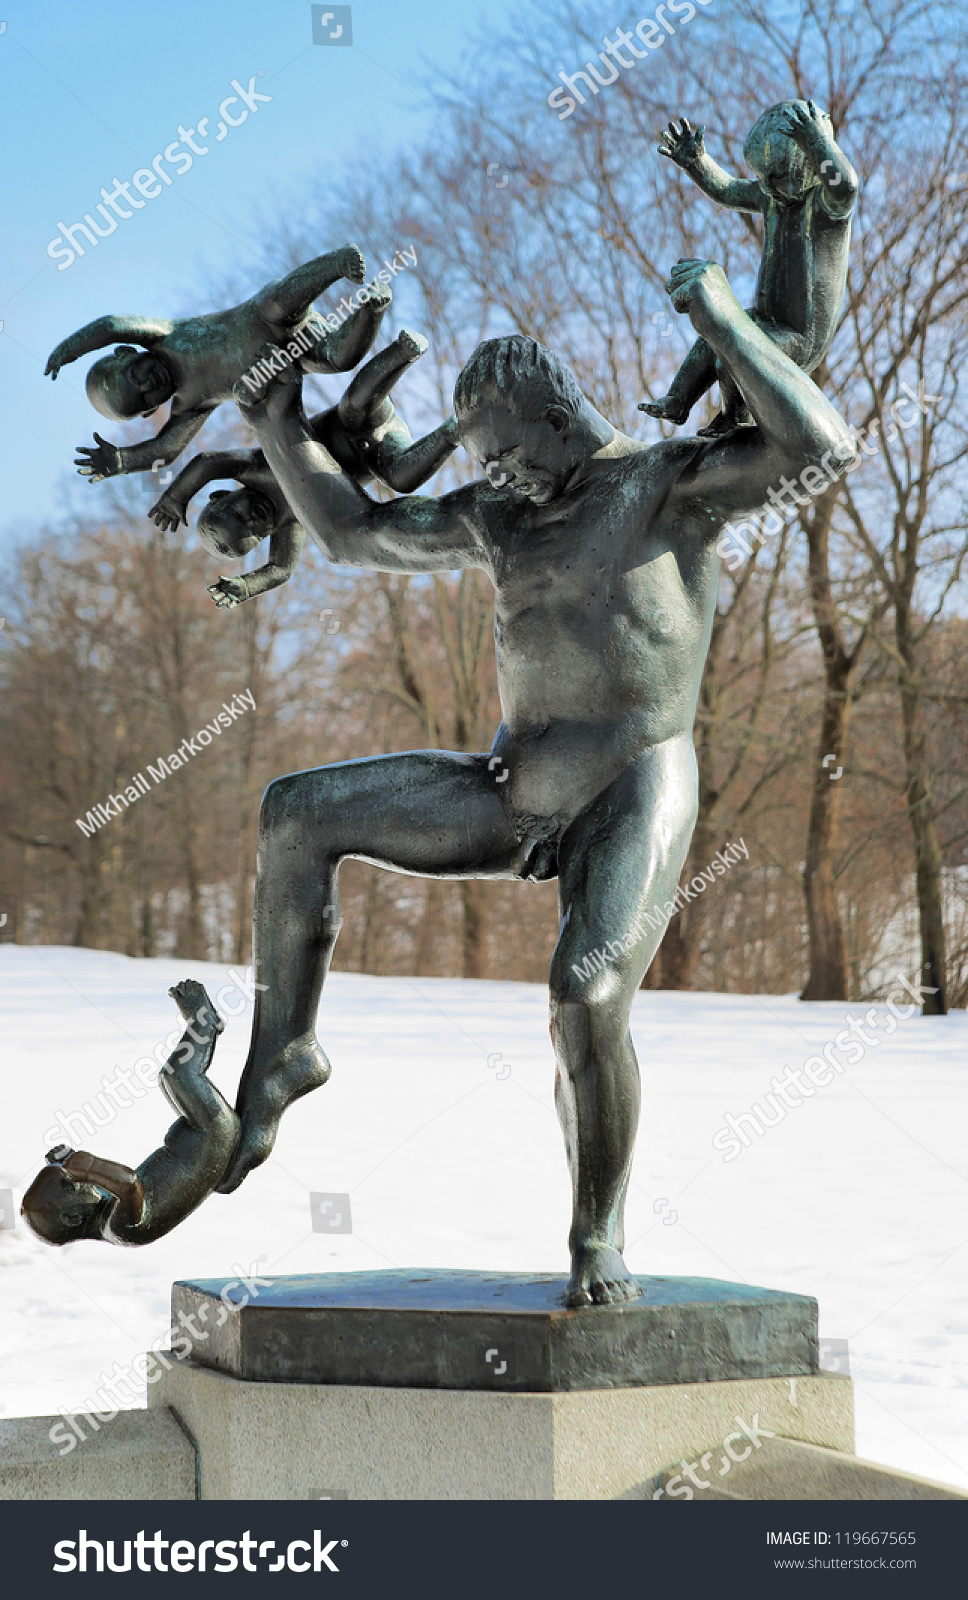 Oslo march sculpture in vigeland park on